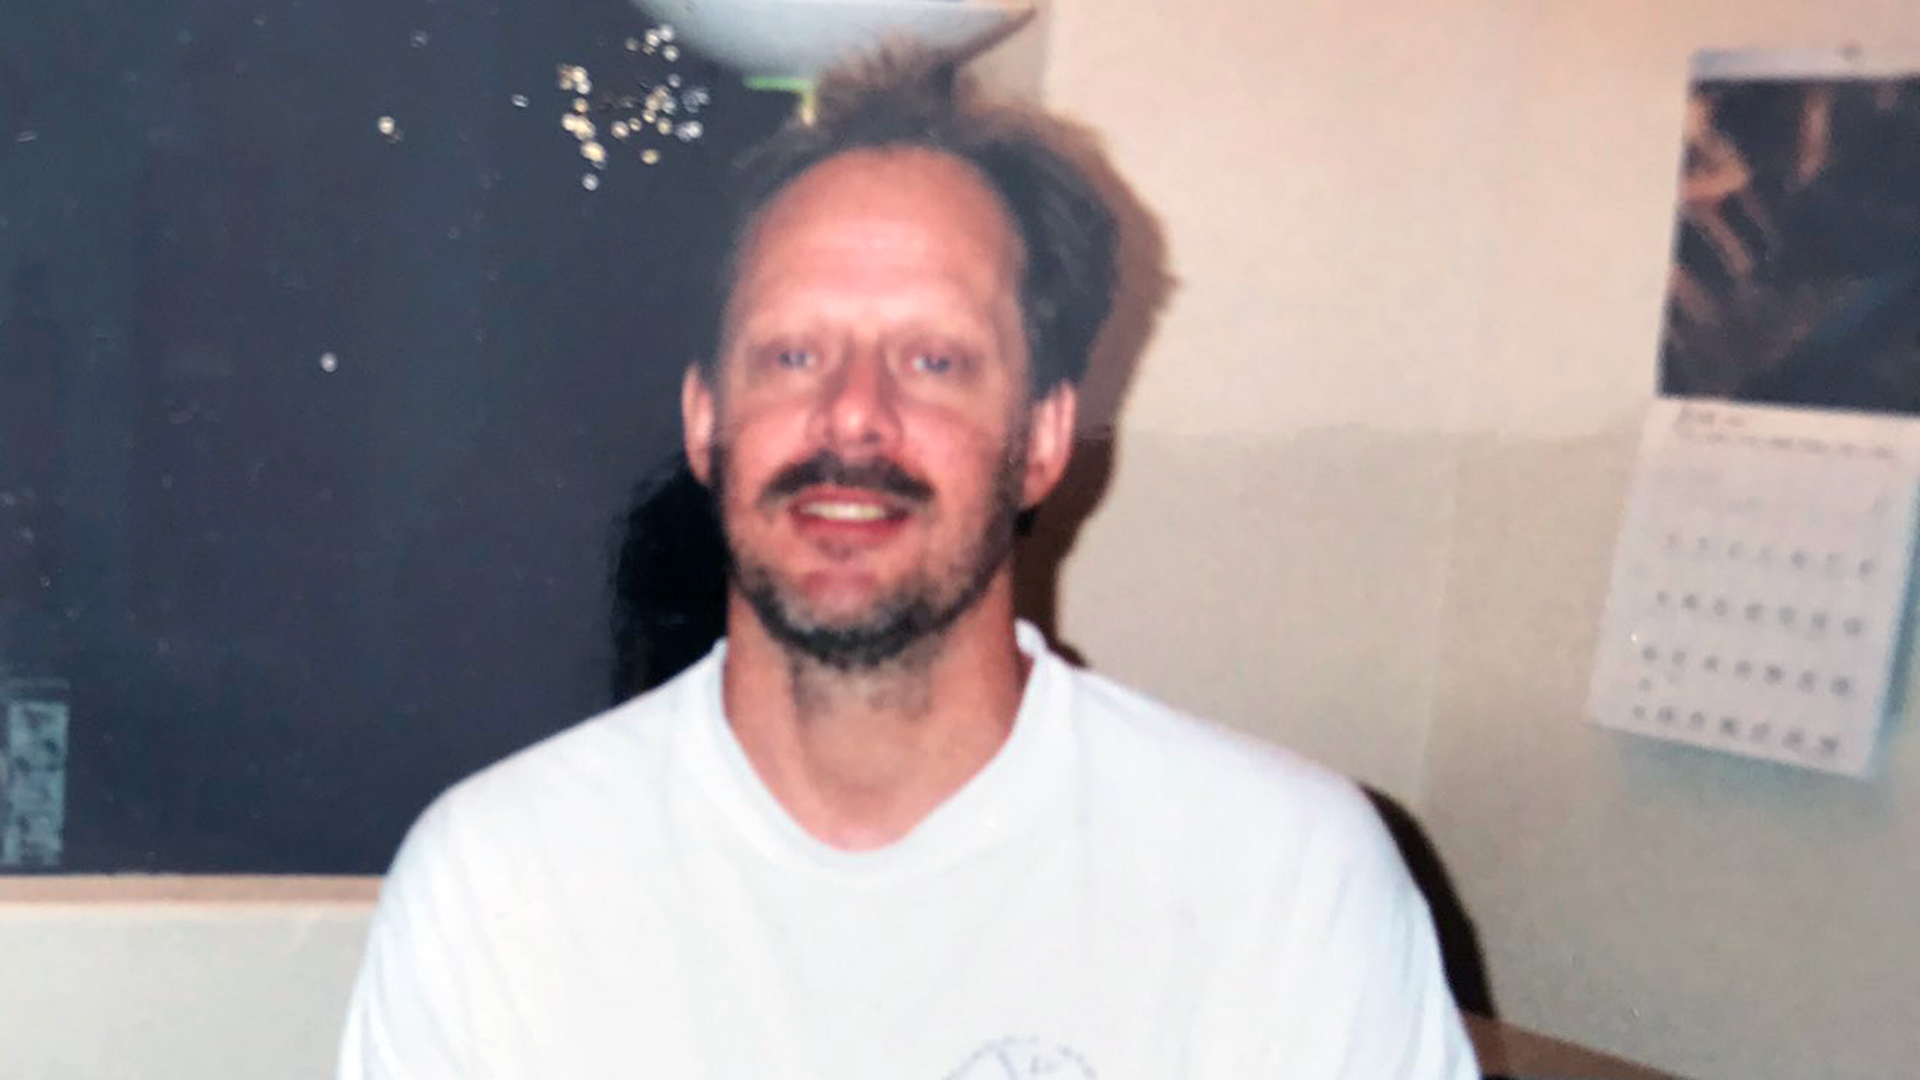 Stephen Paddock image from brother-159532.jpg02378526